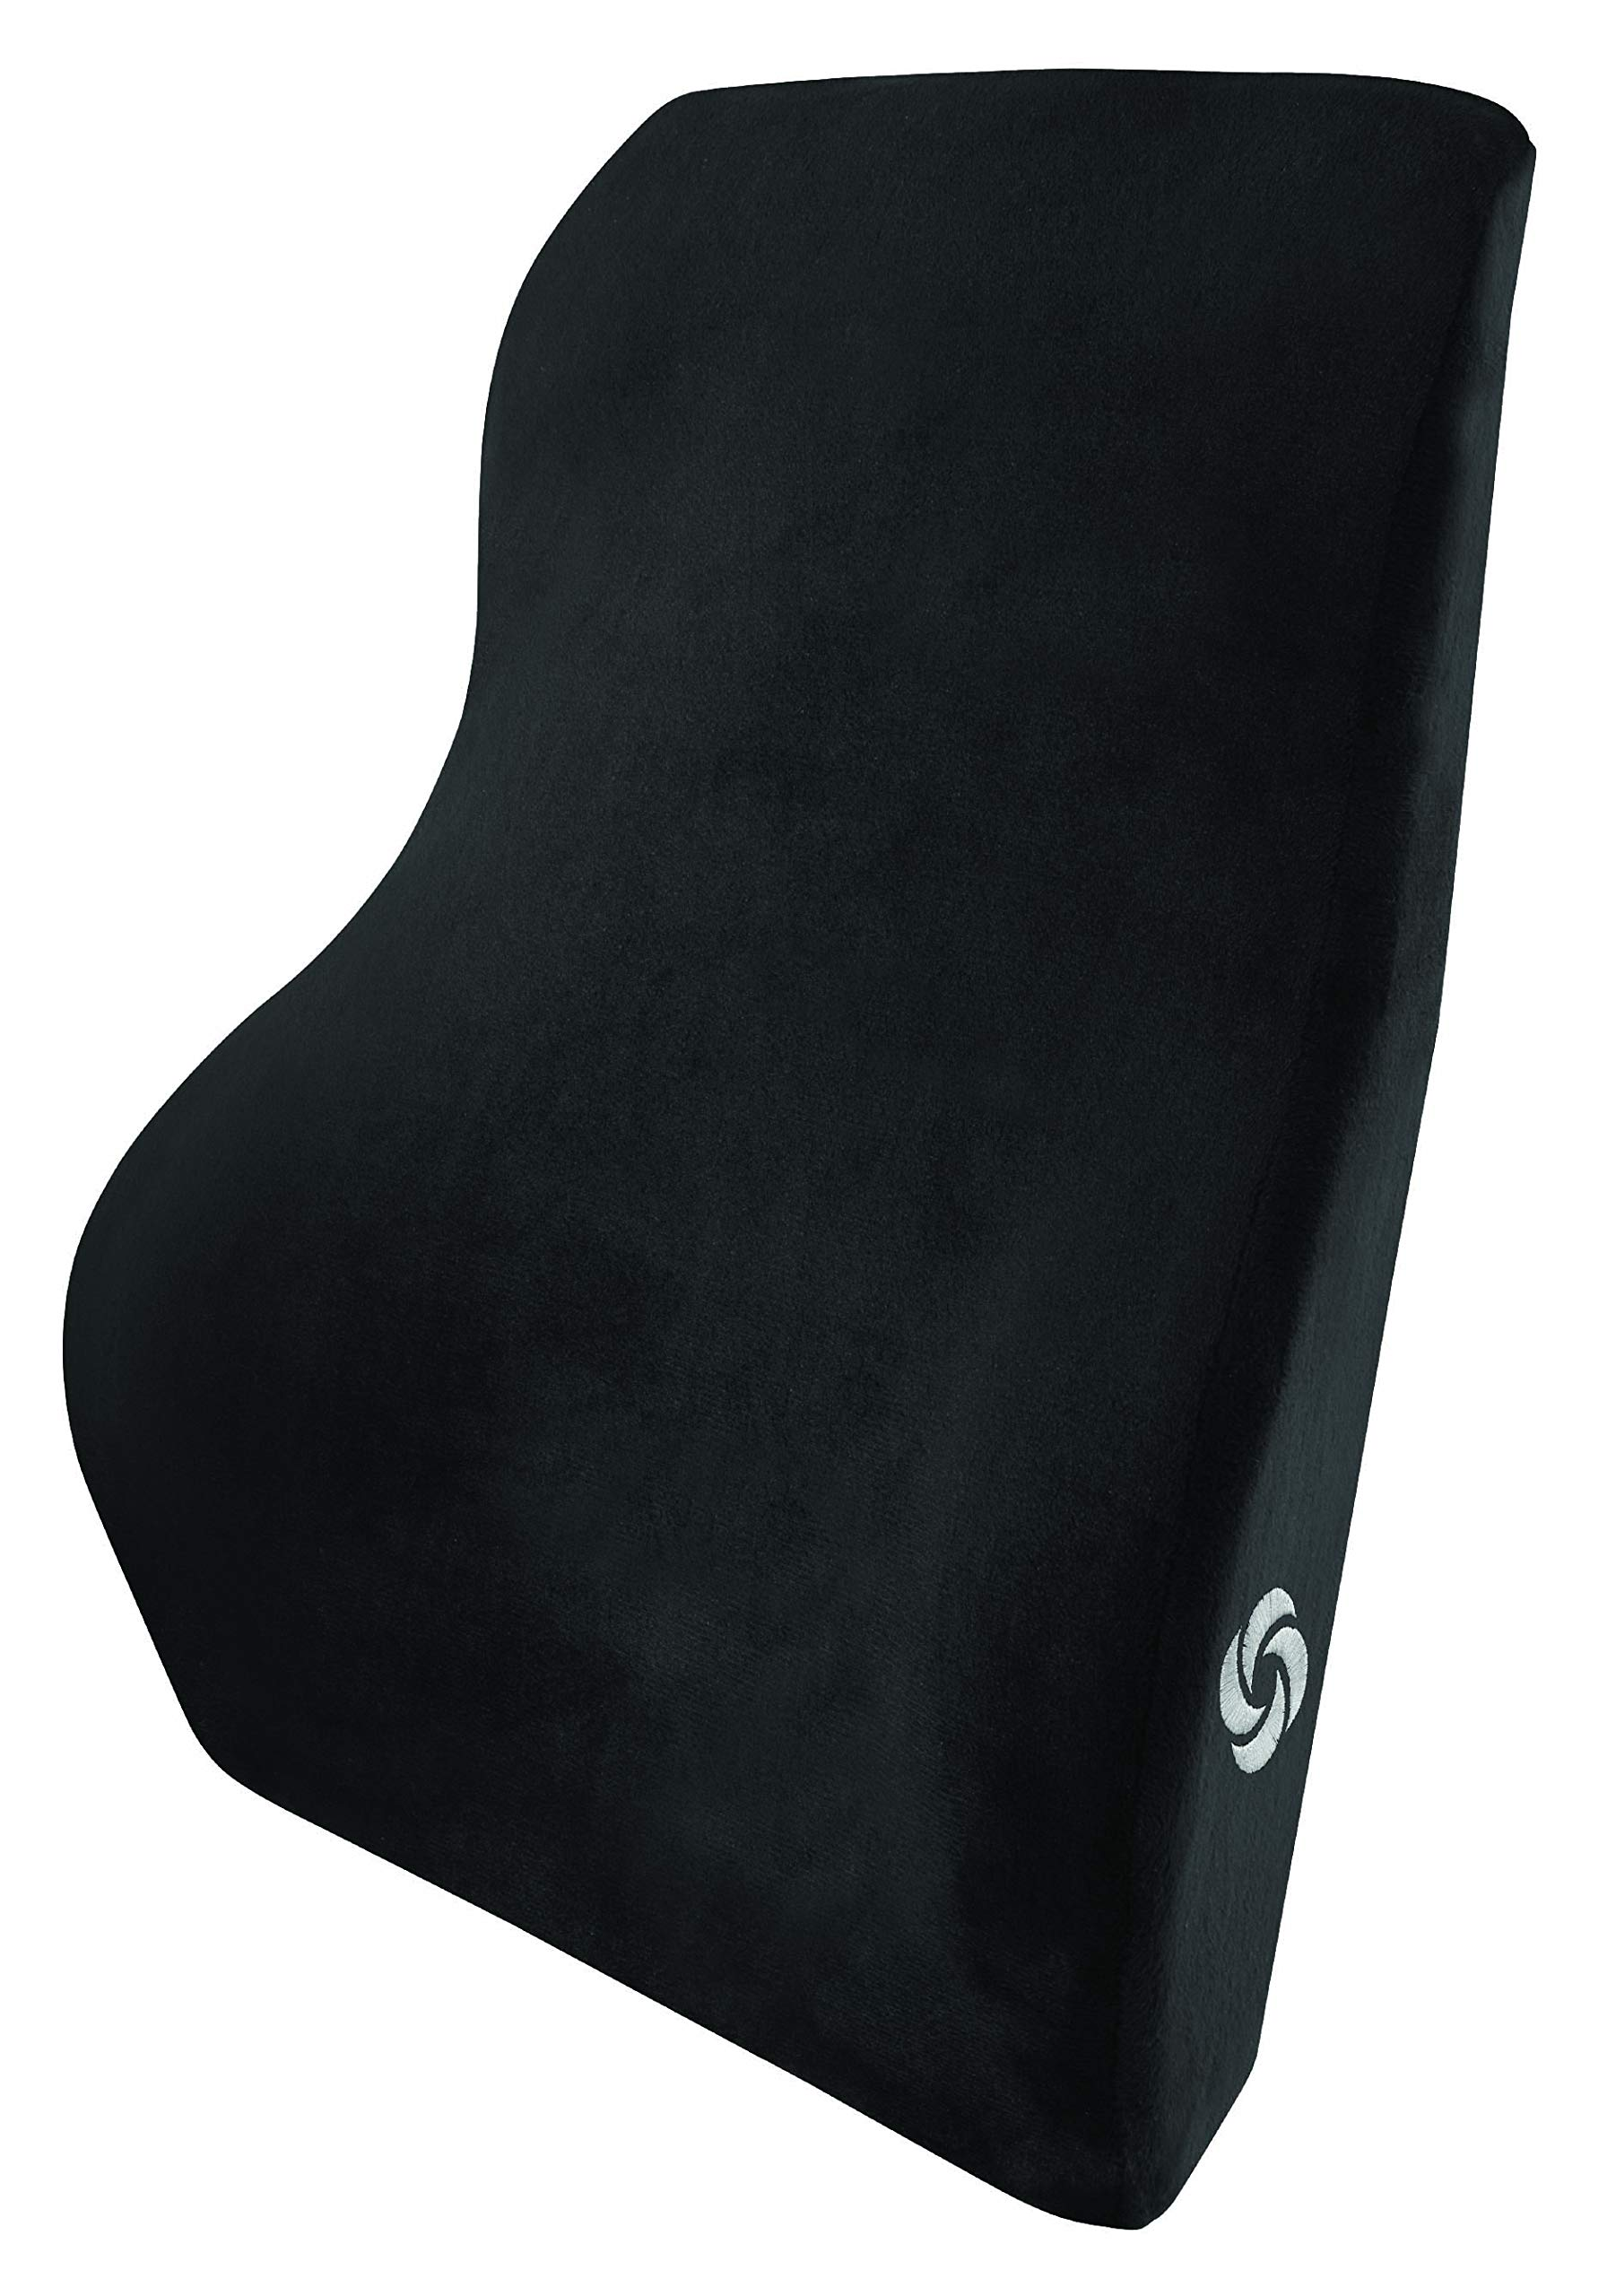 Samsonite SA5447 Full Size Lumbar Support with 100% Pure Memory Foam  Helps Relieve Lower Back Pain  Fits Most Seats by Samsonite (Image #2)